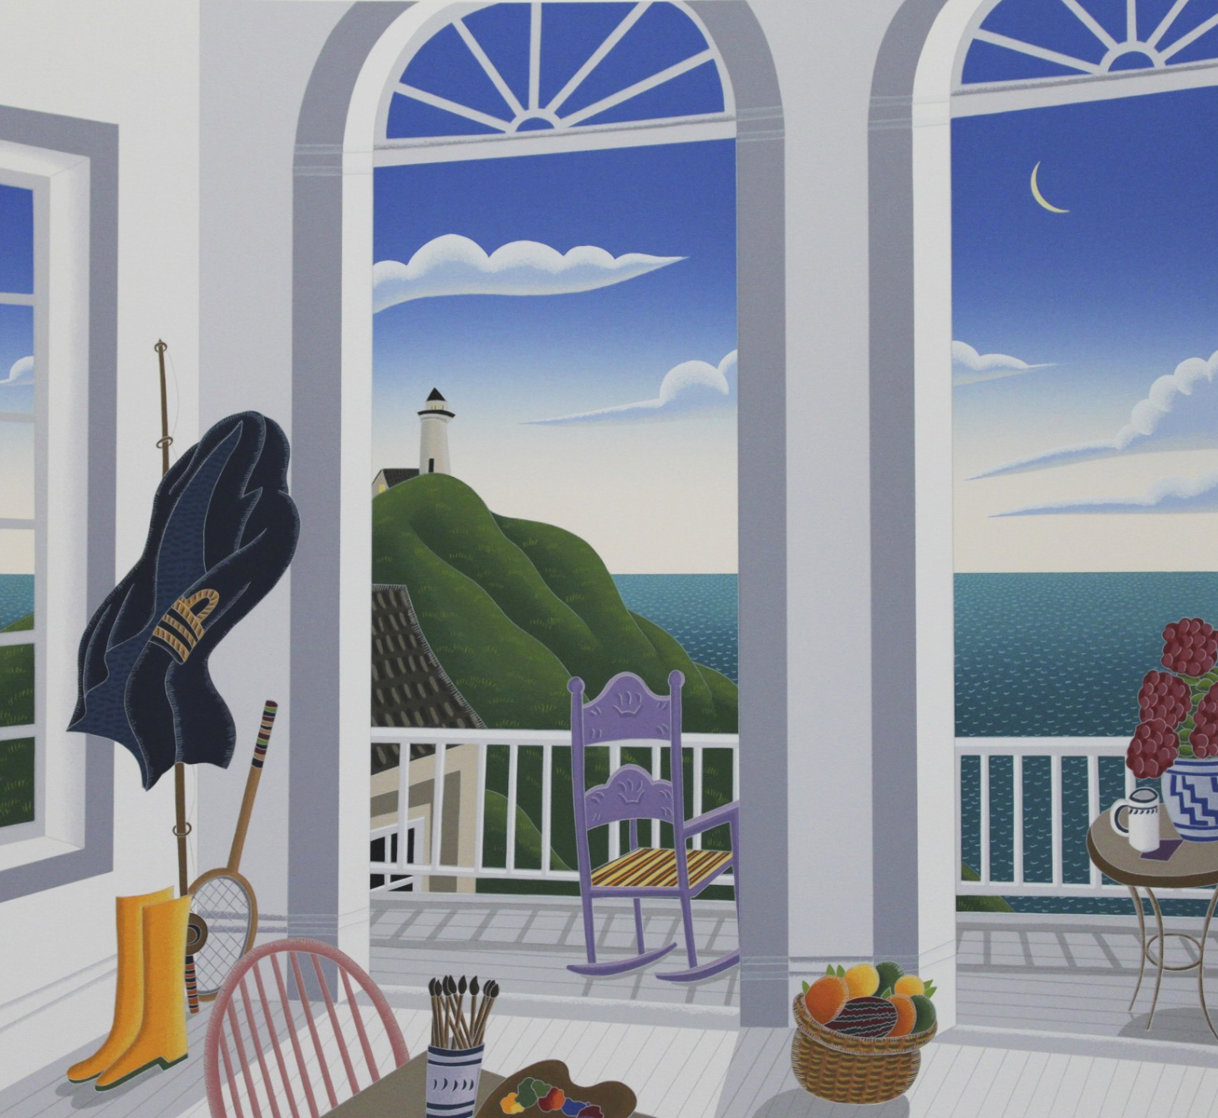 Nantucket Porch With Captain's Jacket 1991  Huge Limited Edition Print by Thomas Frederick McKnight